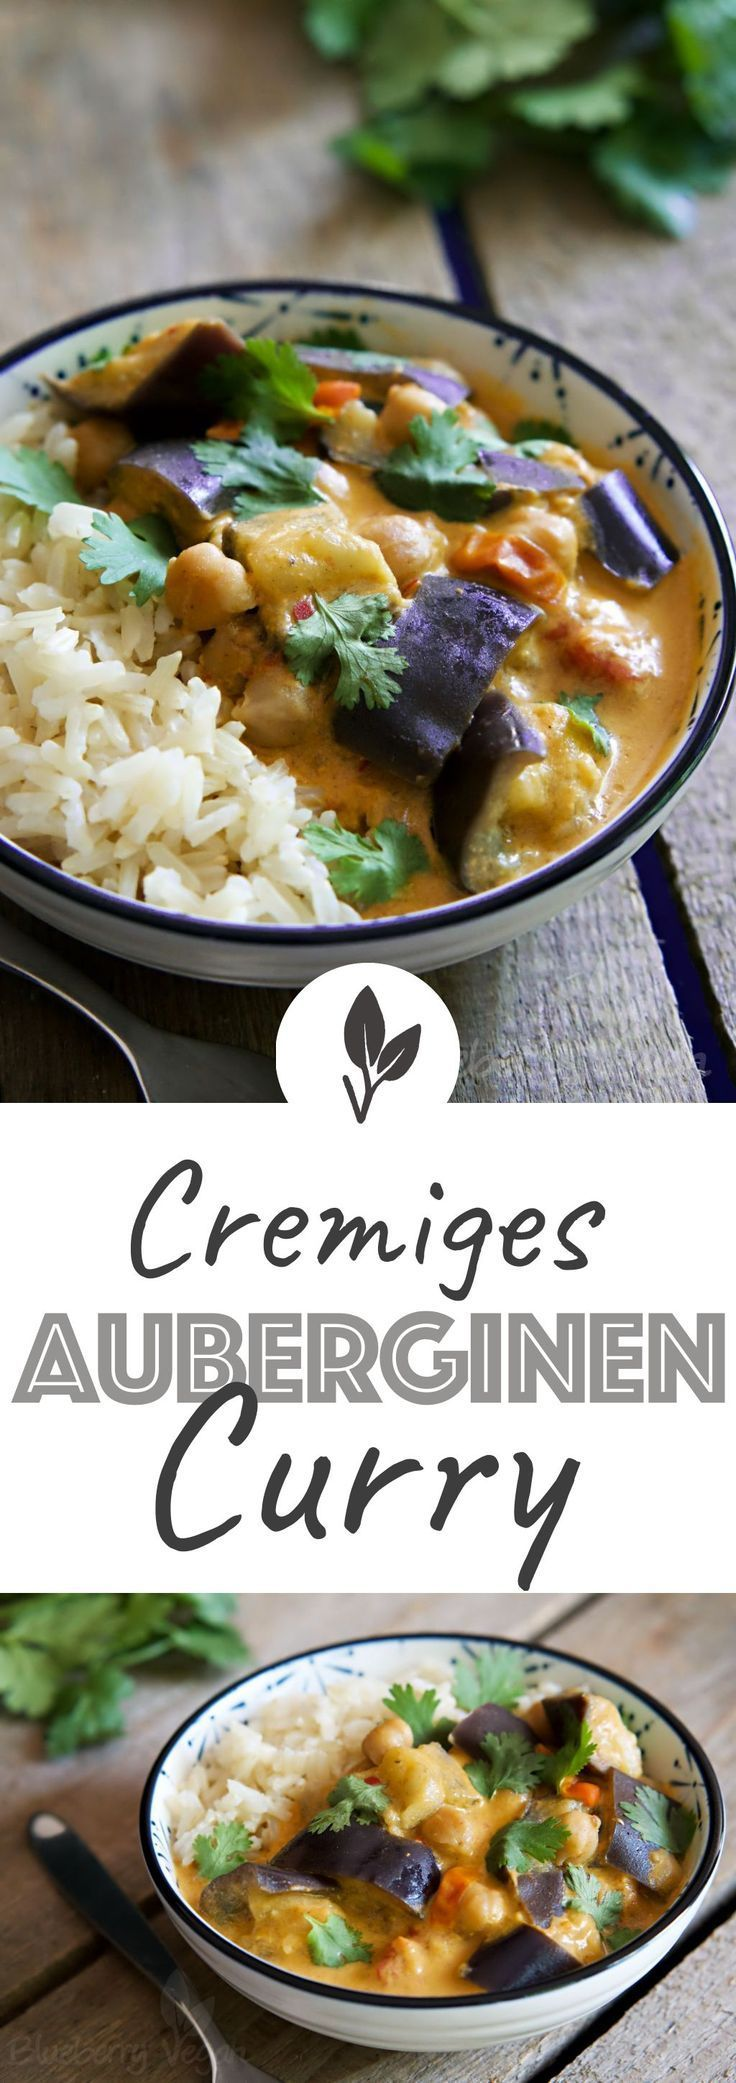 Auberginen-Curry mit Kichererbsen #indianfood